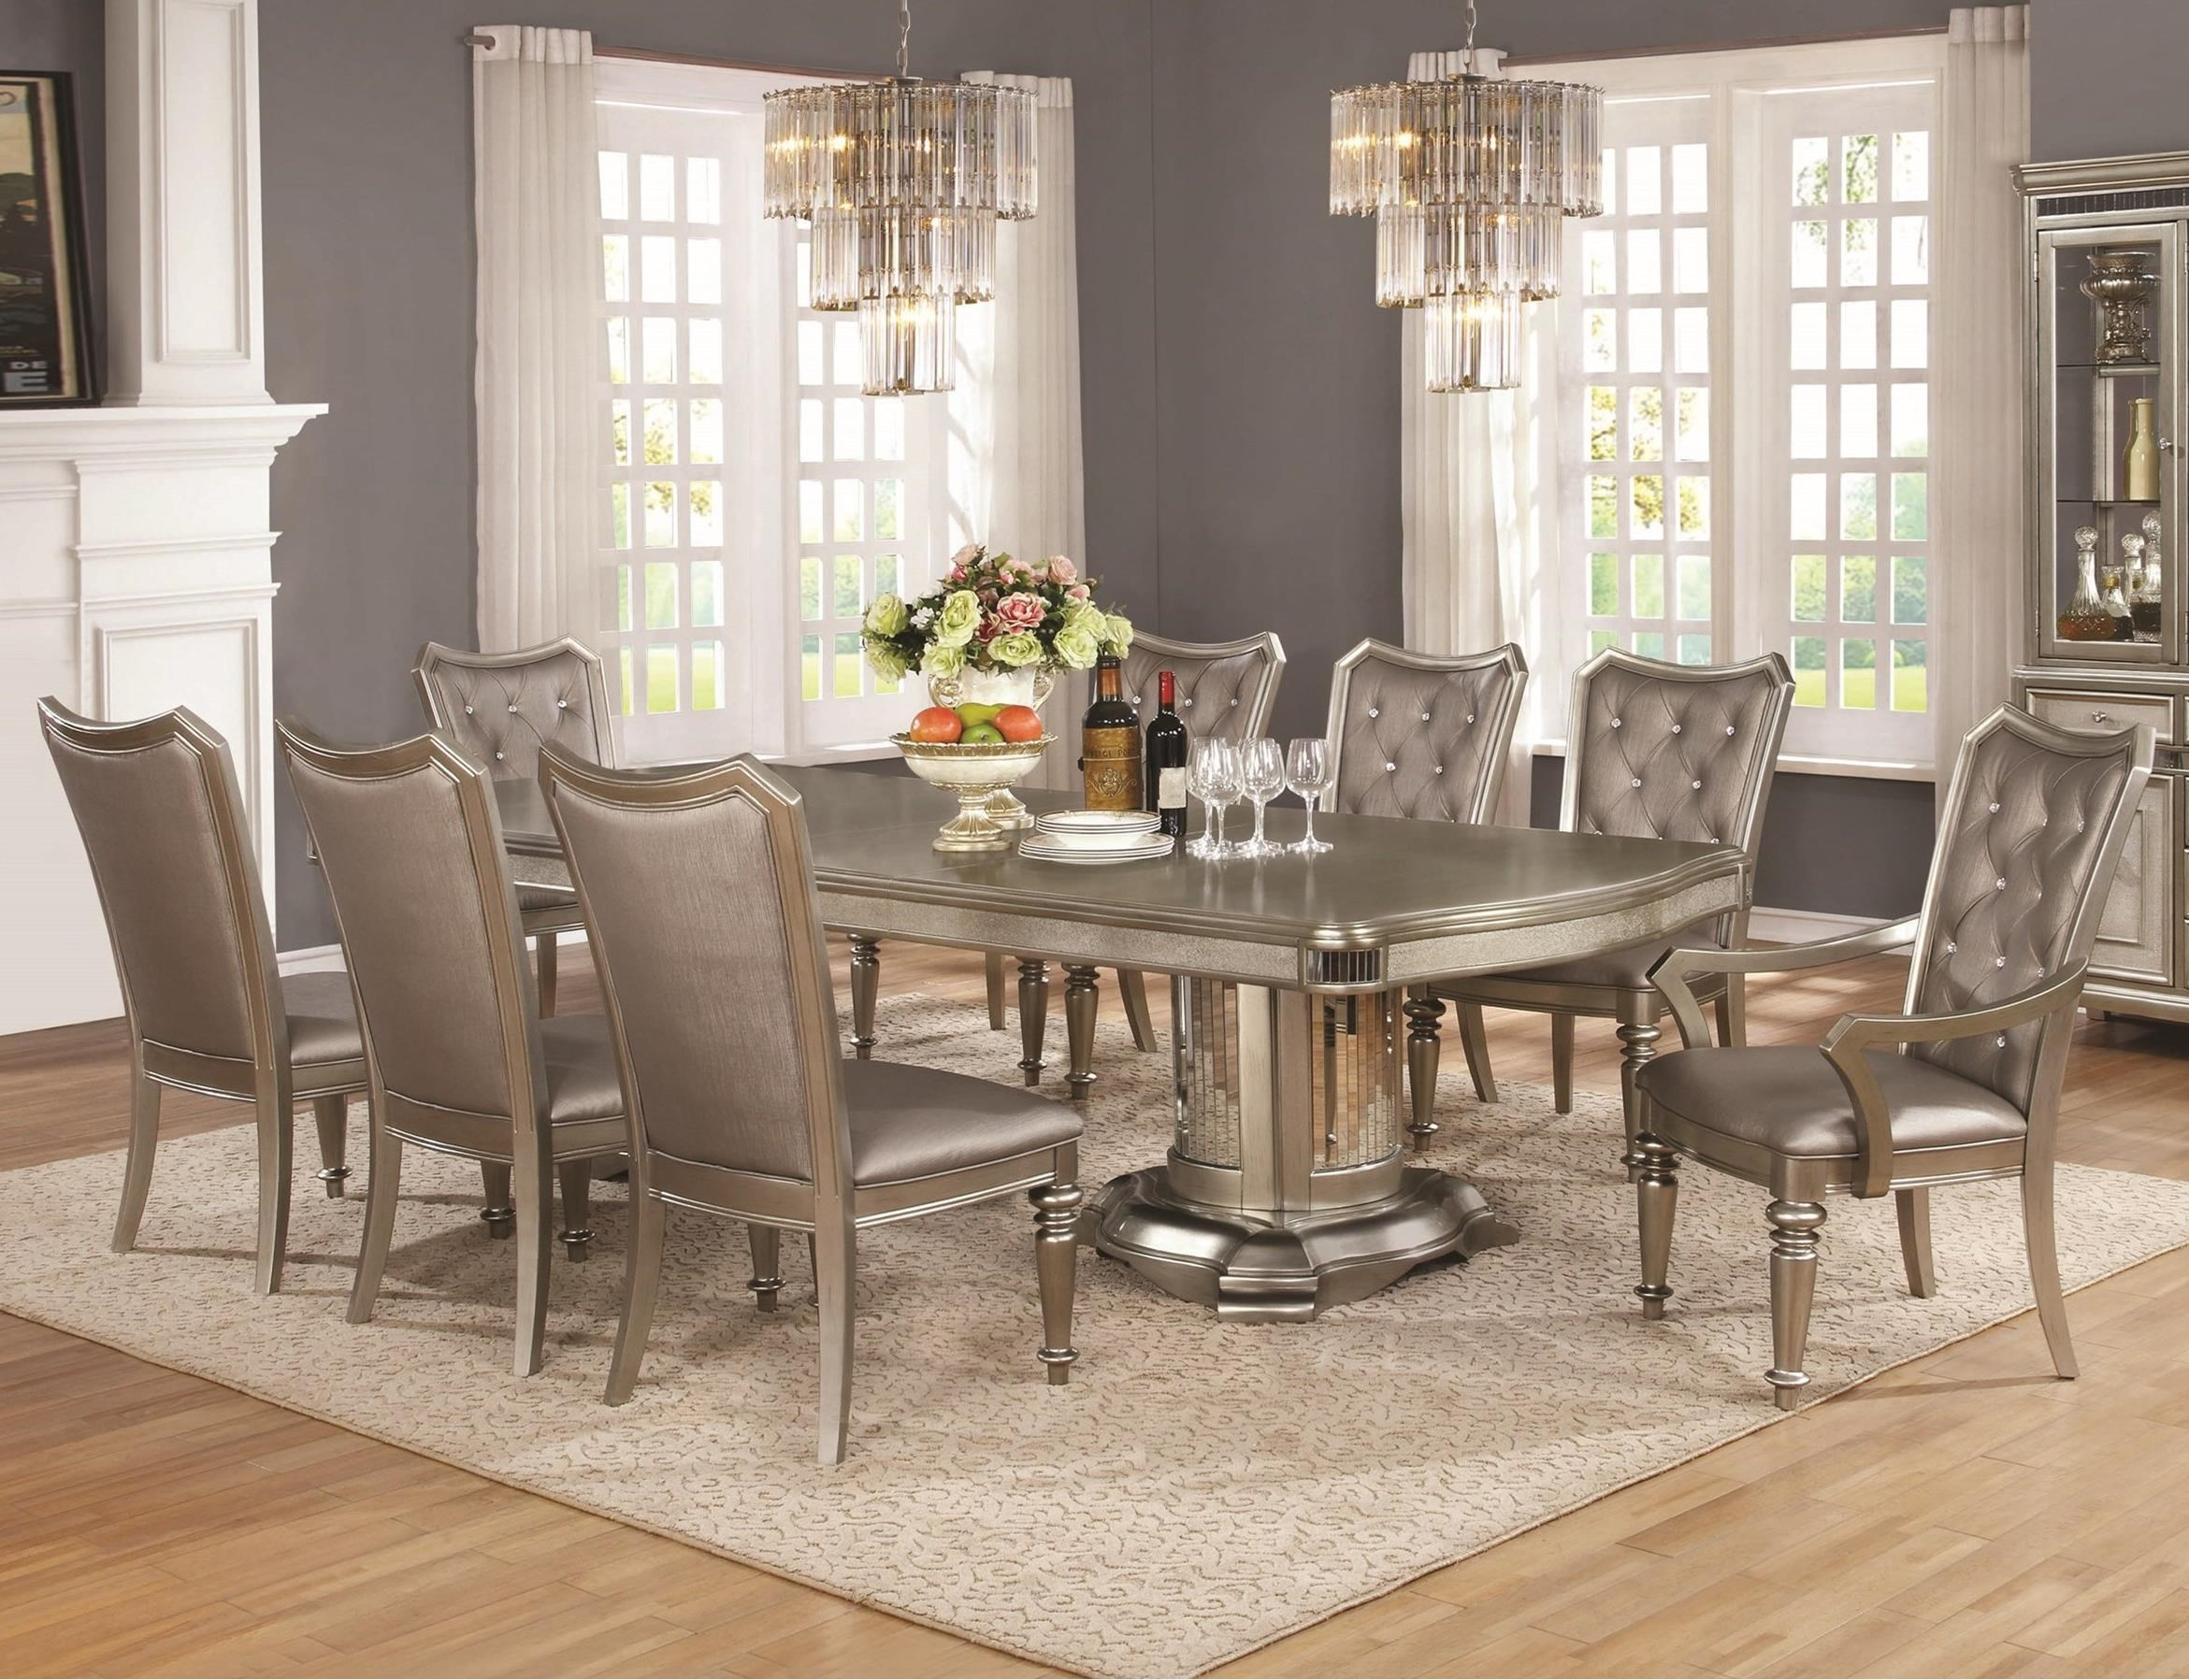 Delicieux Danette 7 Piece... $2604 $5208. Ludolf Dining Table ...